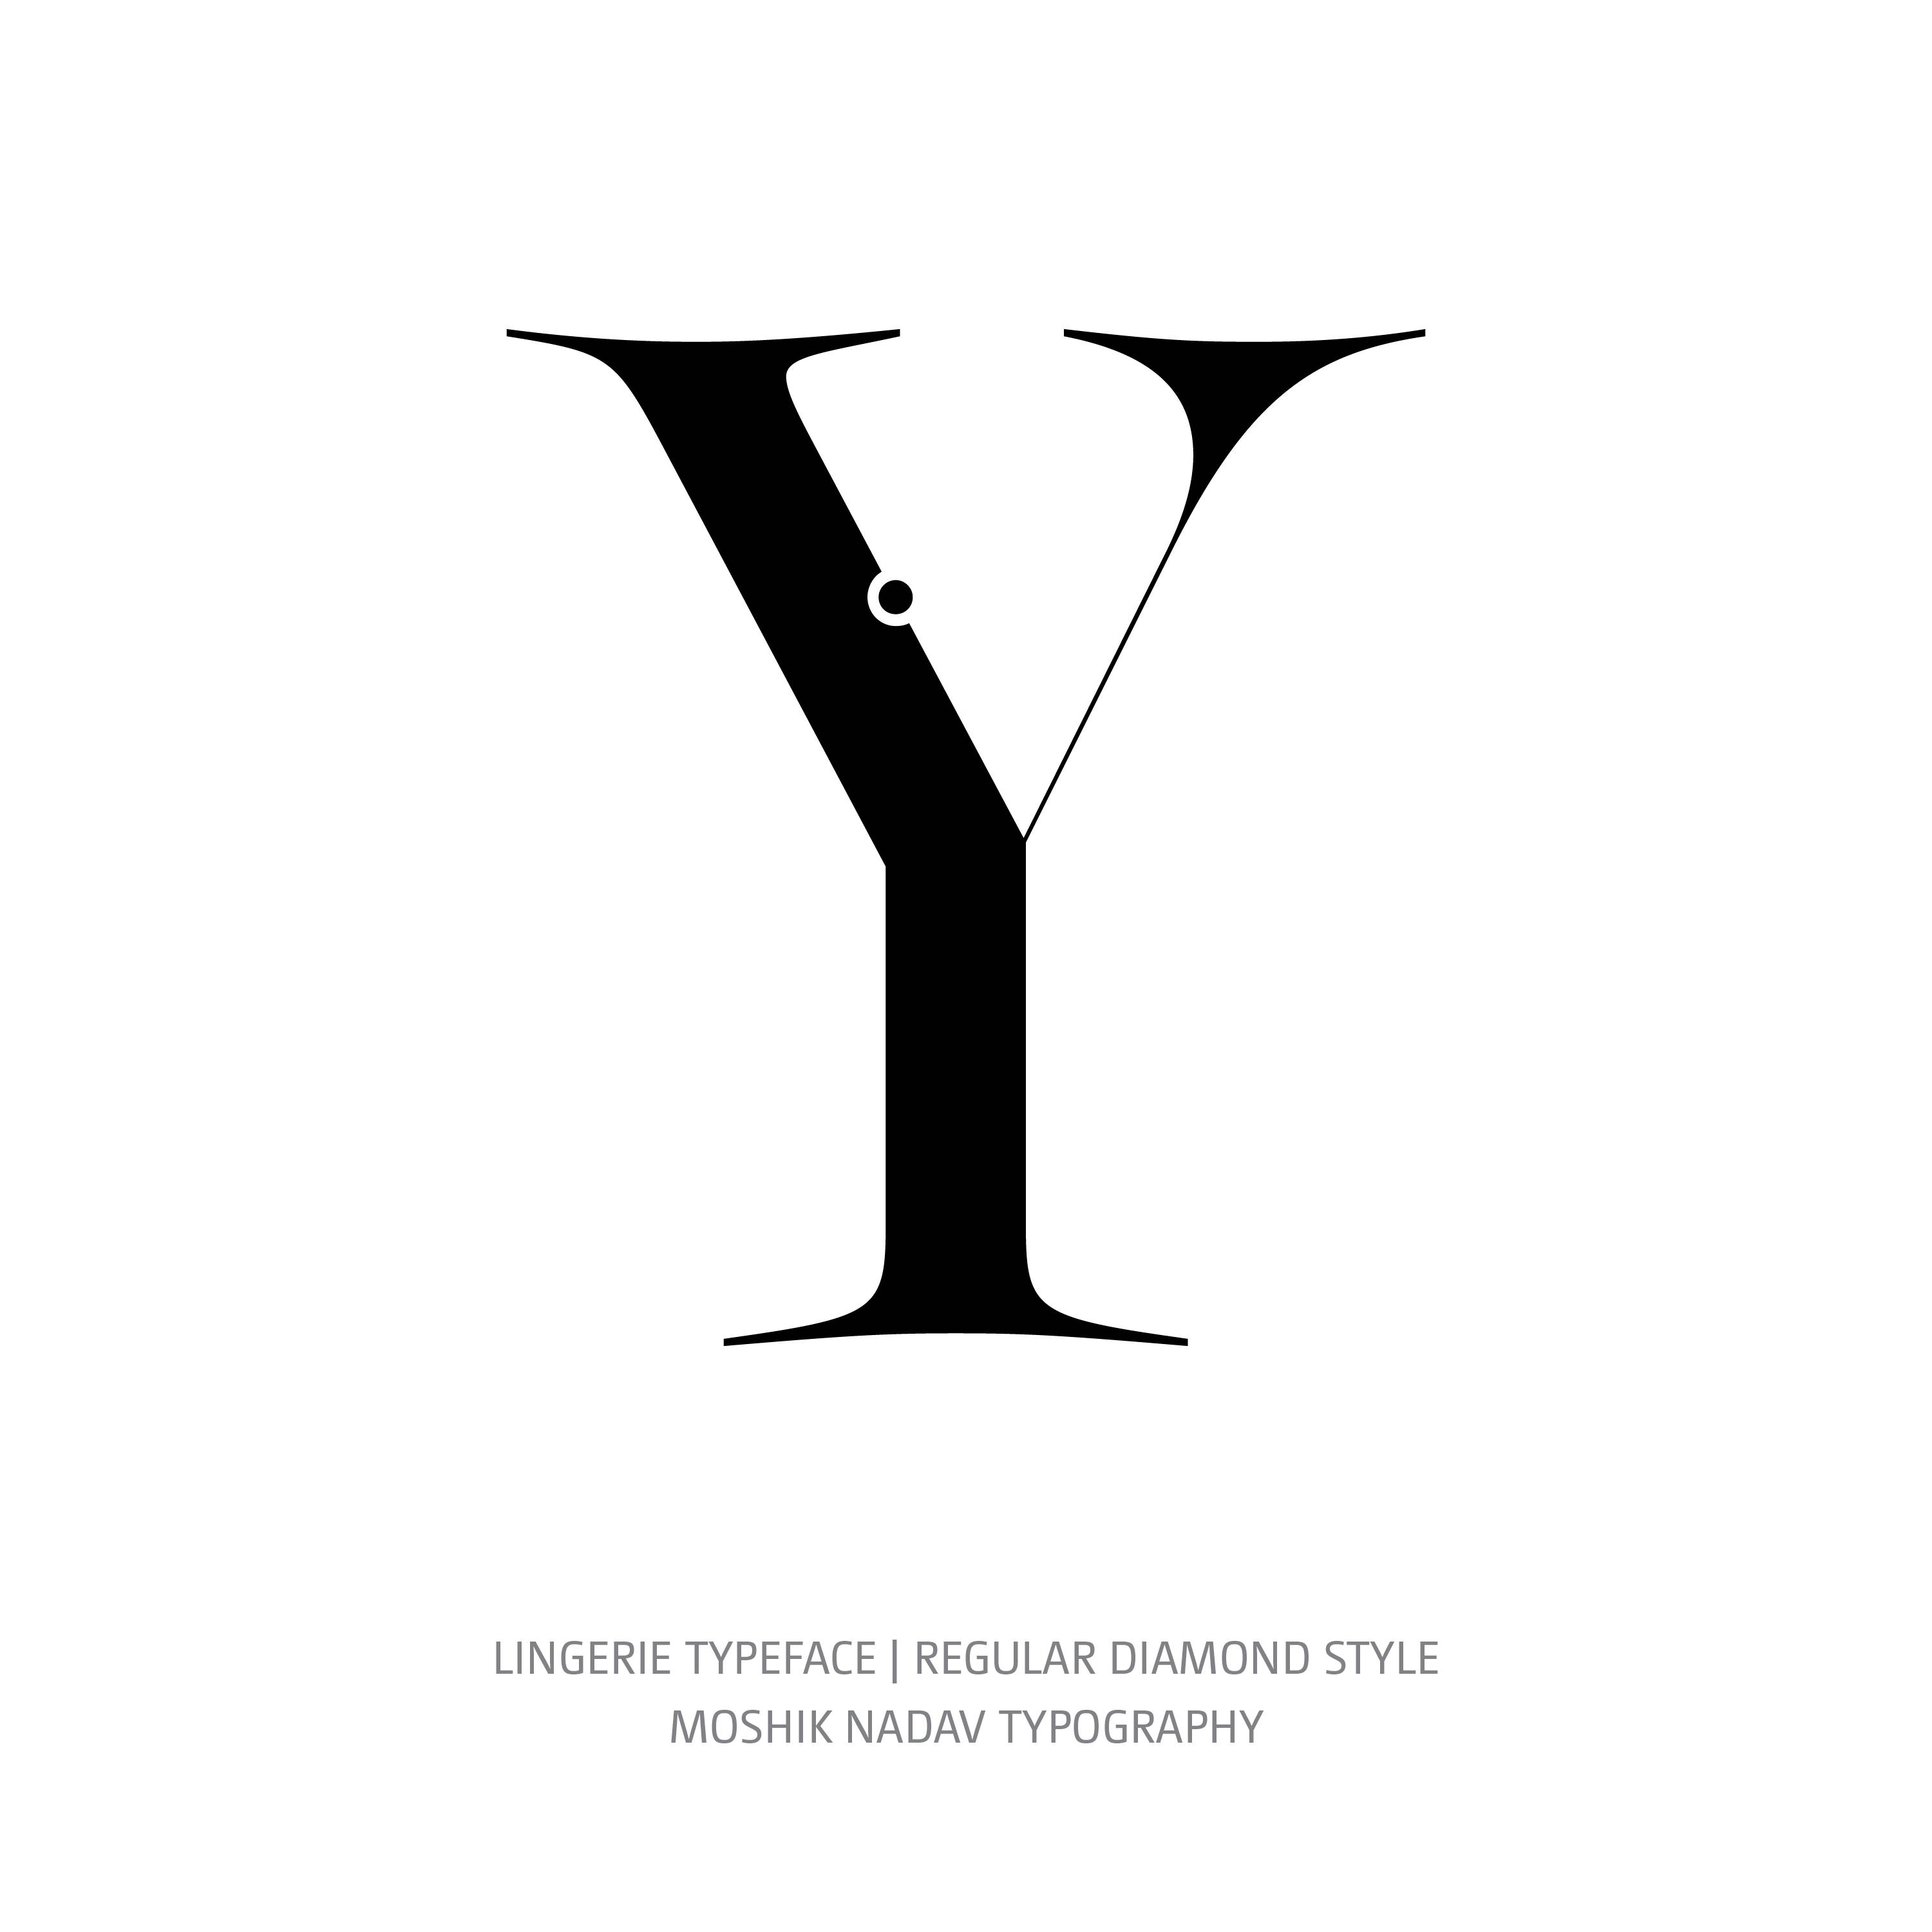 Lingerie Typeface Regular Diamond Y